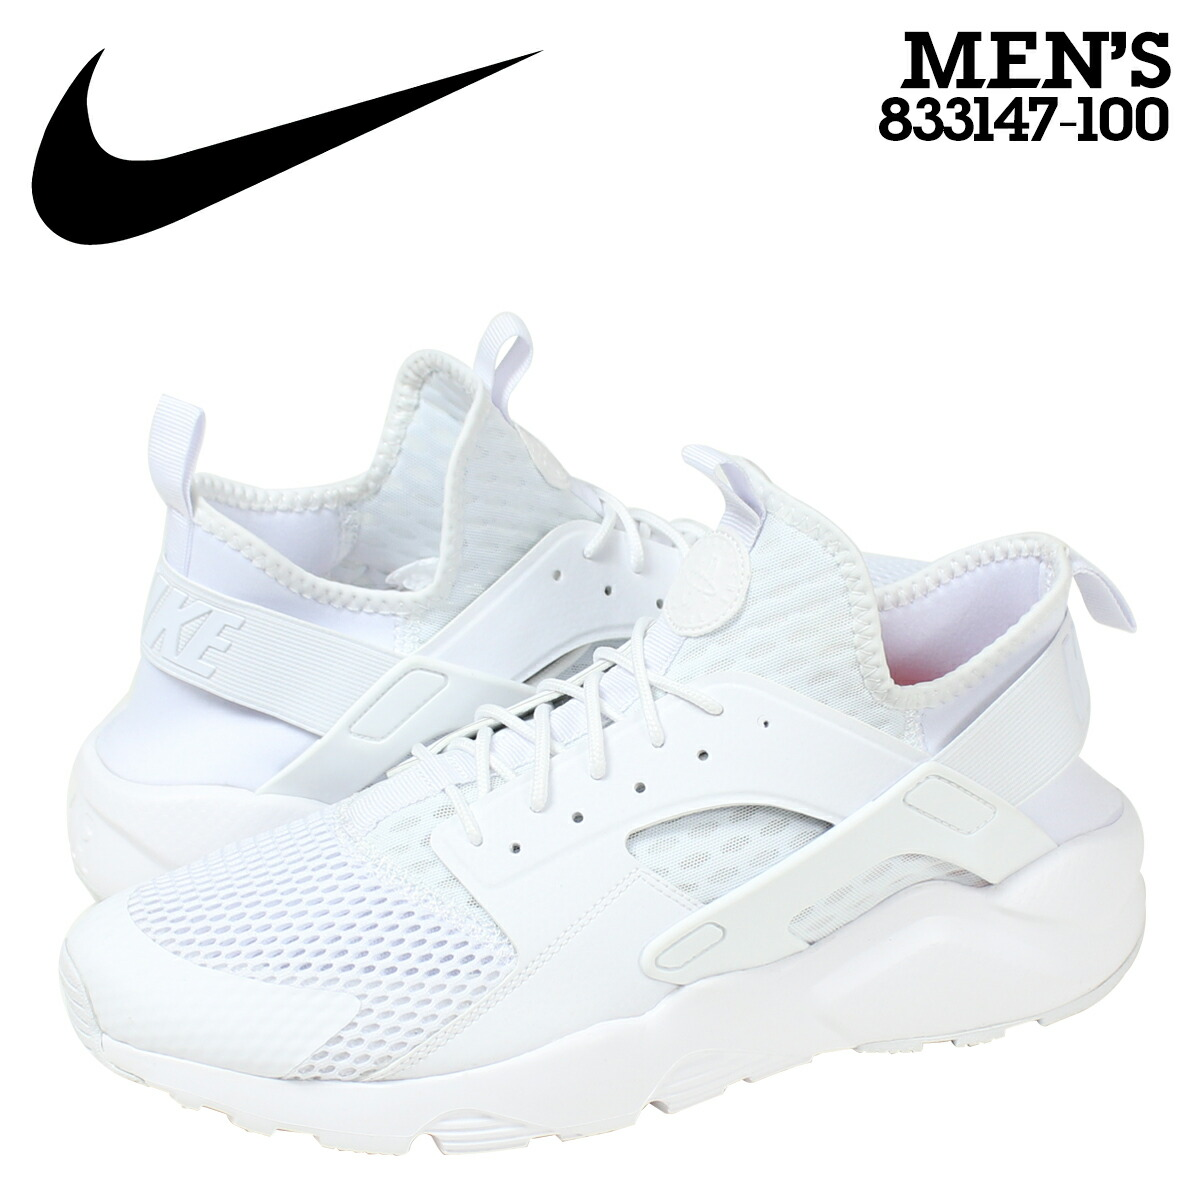 Nike Air Huarache Run Ultra Breeze